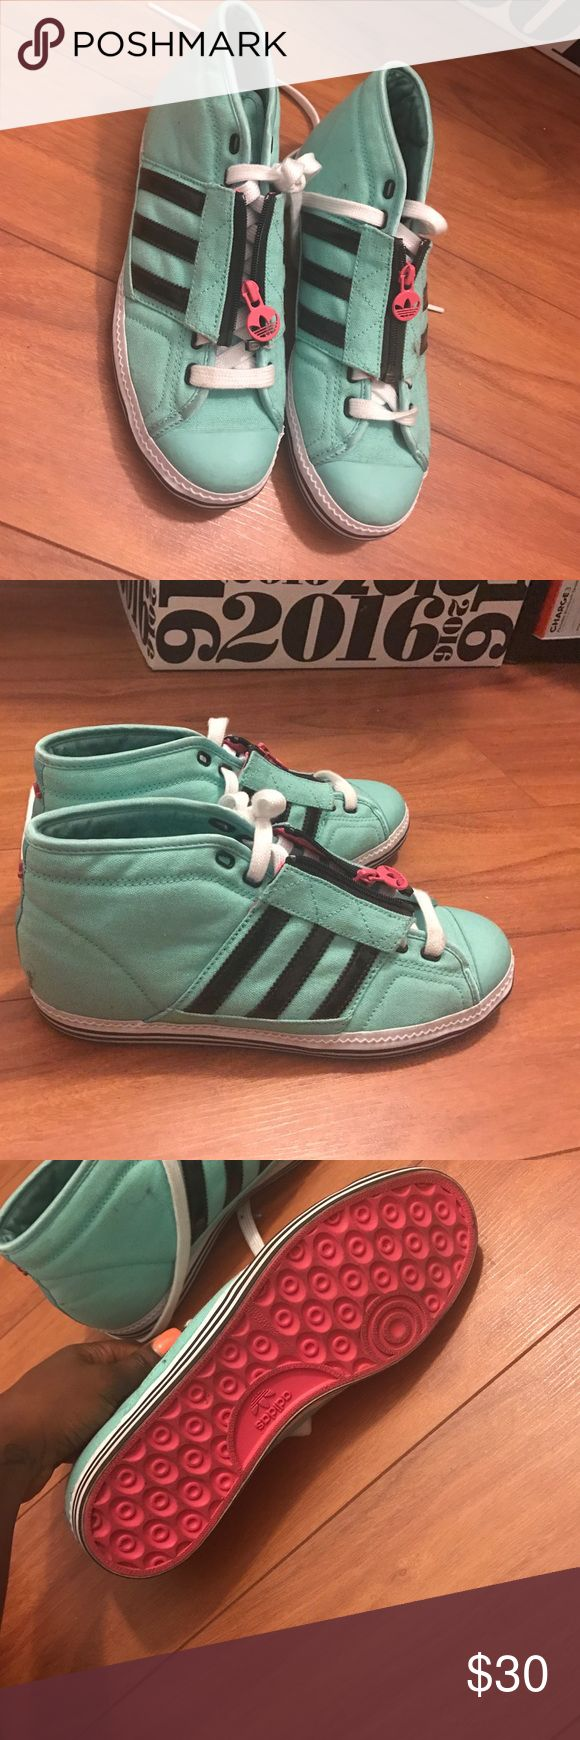 25 best ideas about pink adidas shoes on